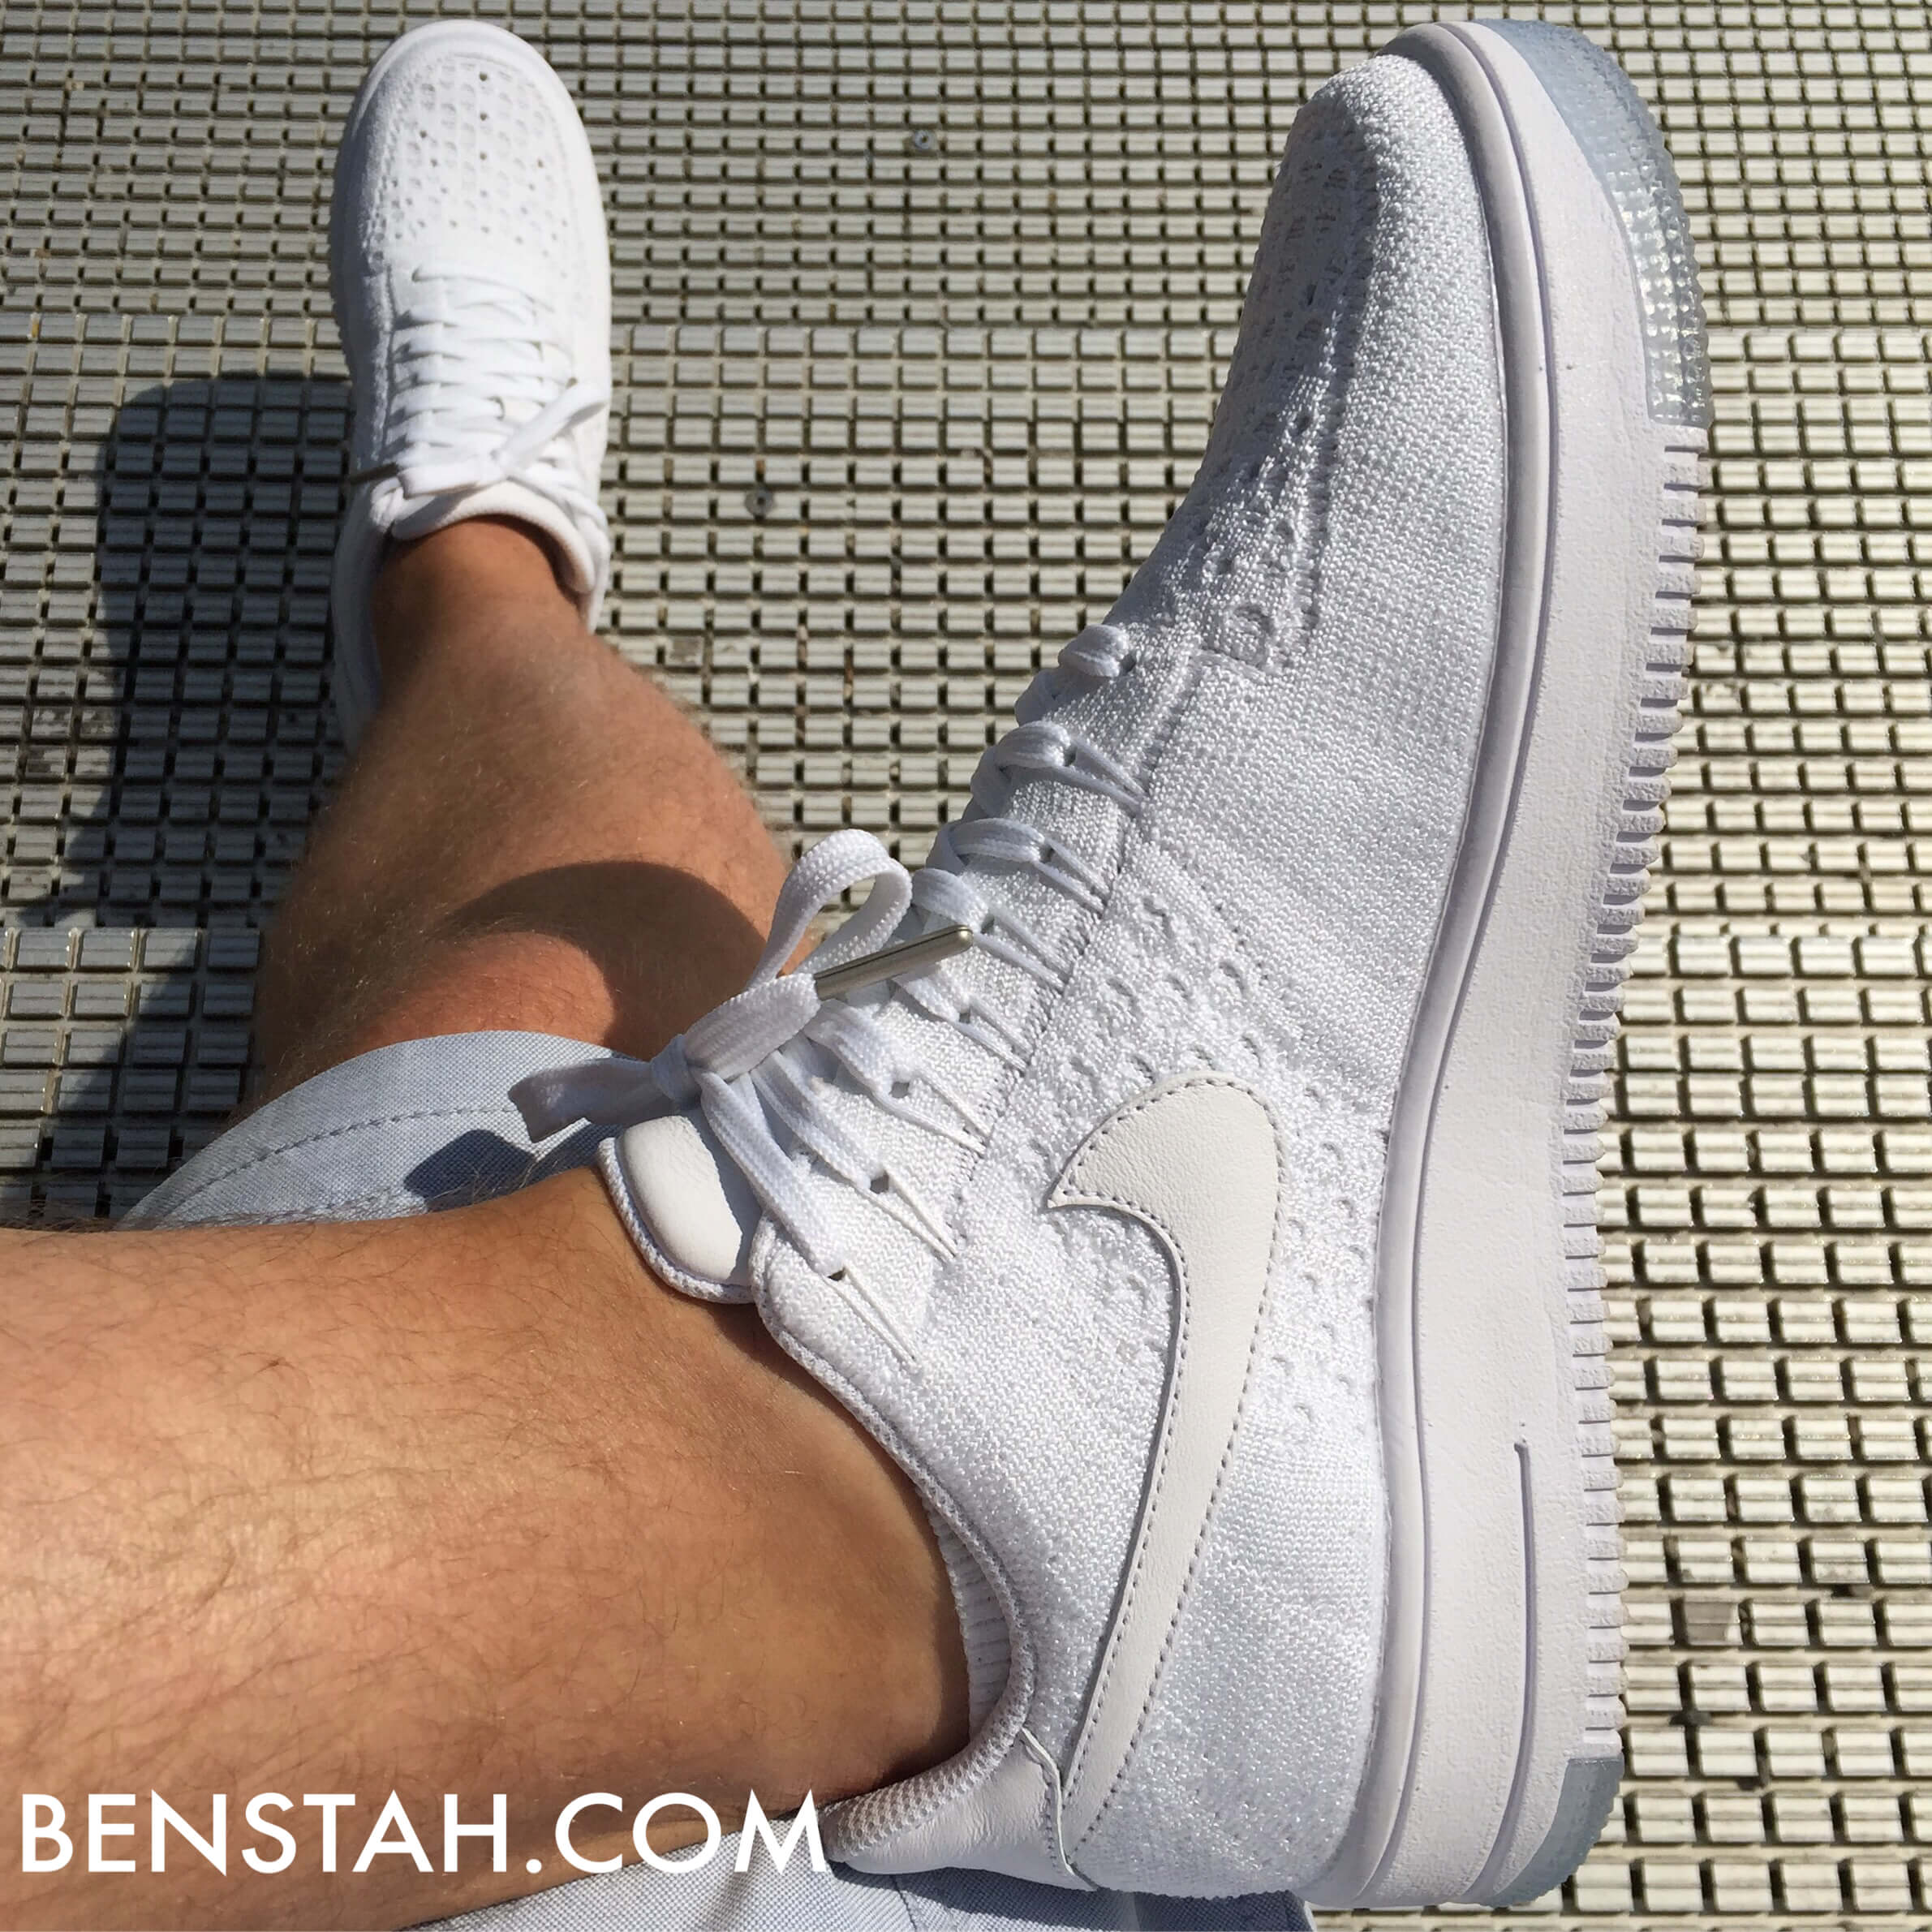 nike-air-force-1-ultra-flyknit-top-view-benstah-onfeet